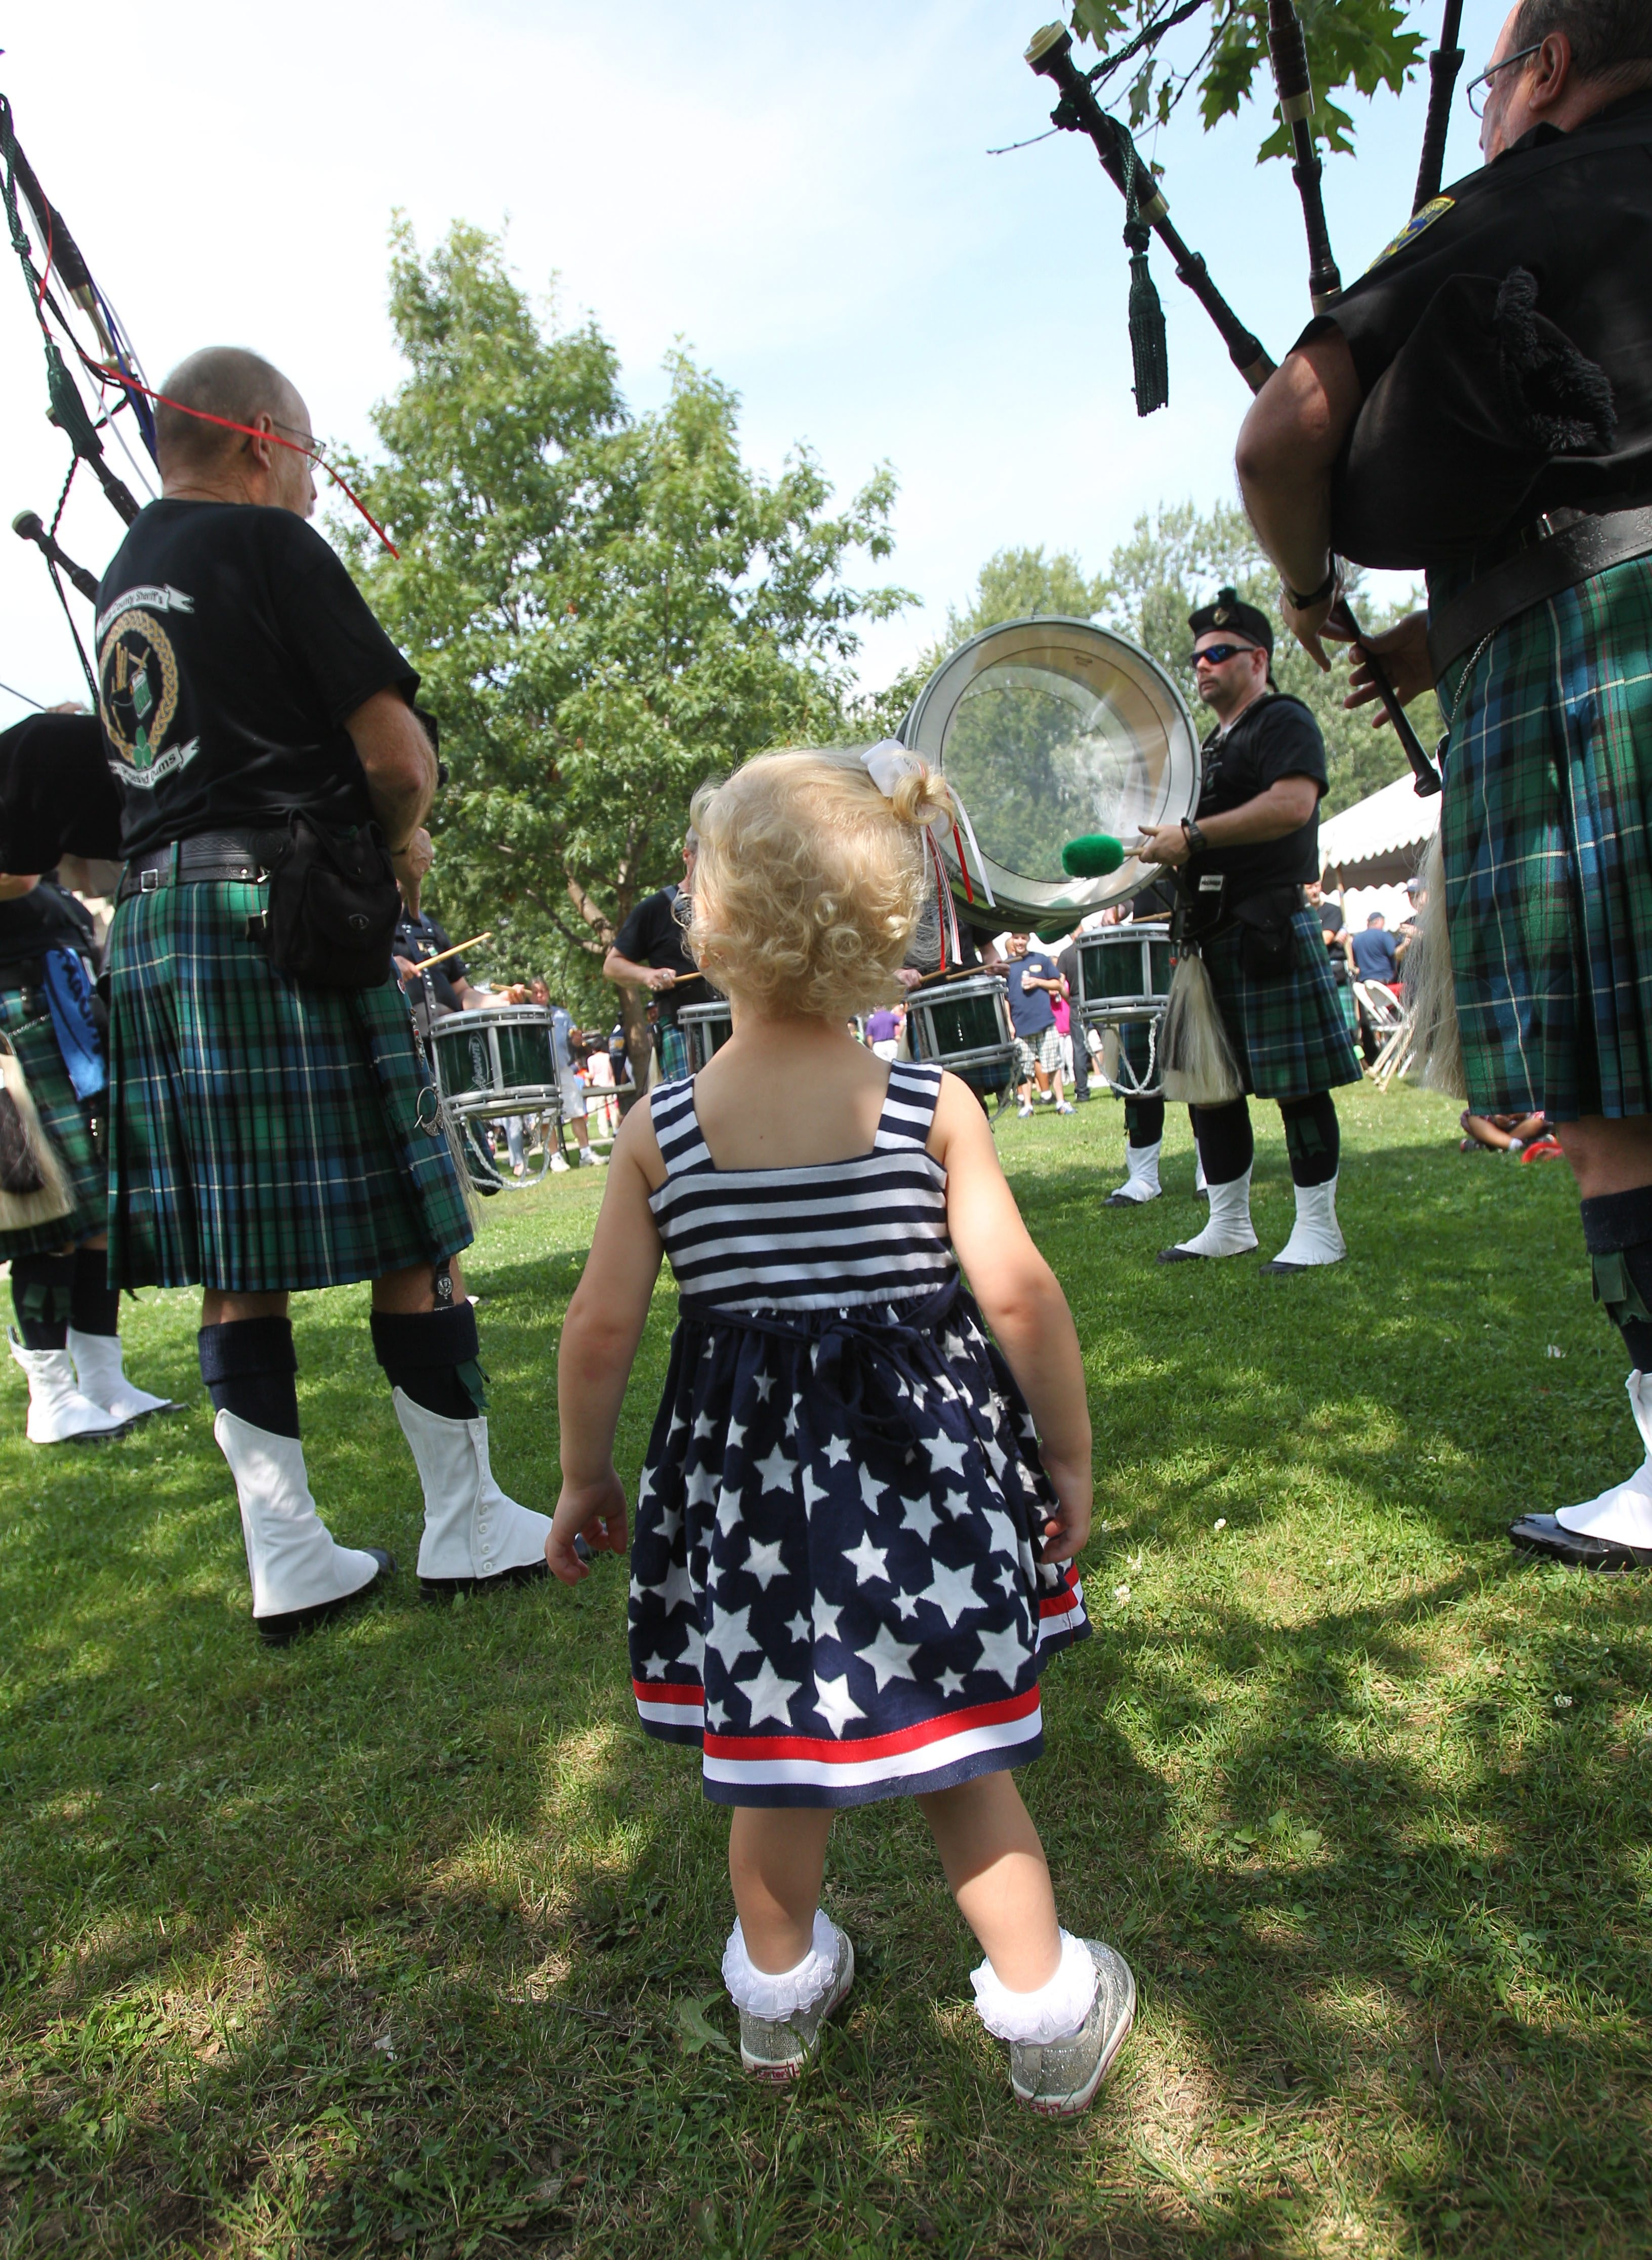 Felicity Keough, 2, of South Buffalo, dances to the music of the Sheriff's Pipes and Drums after marching in the parade with her family.